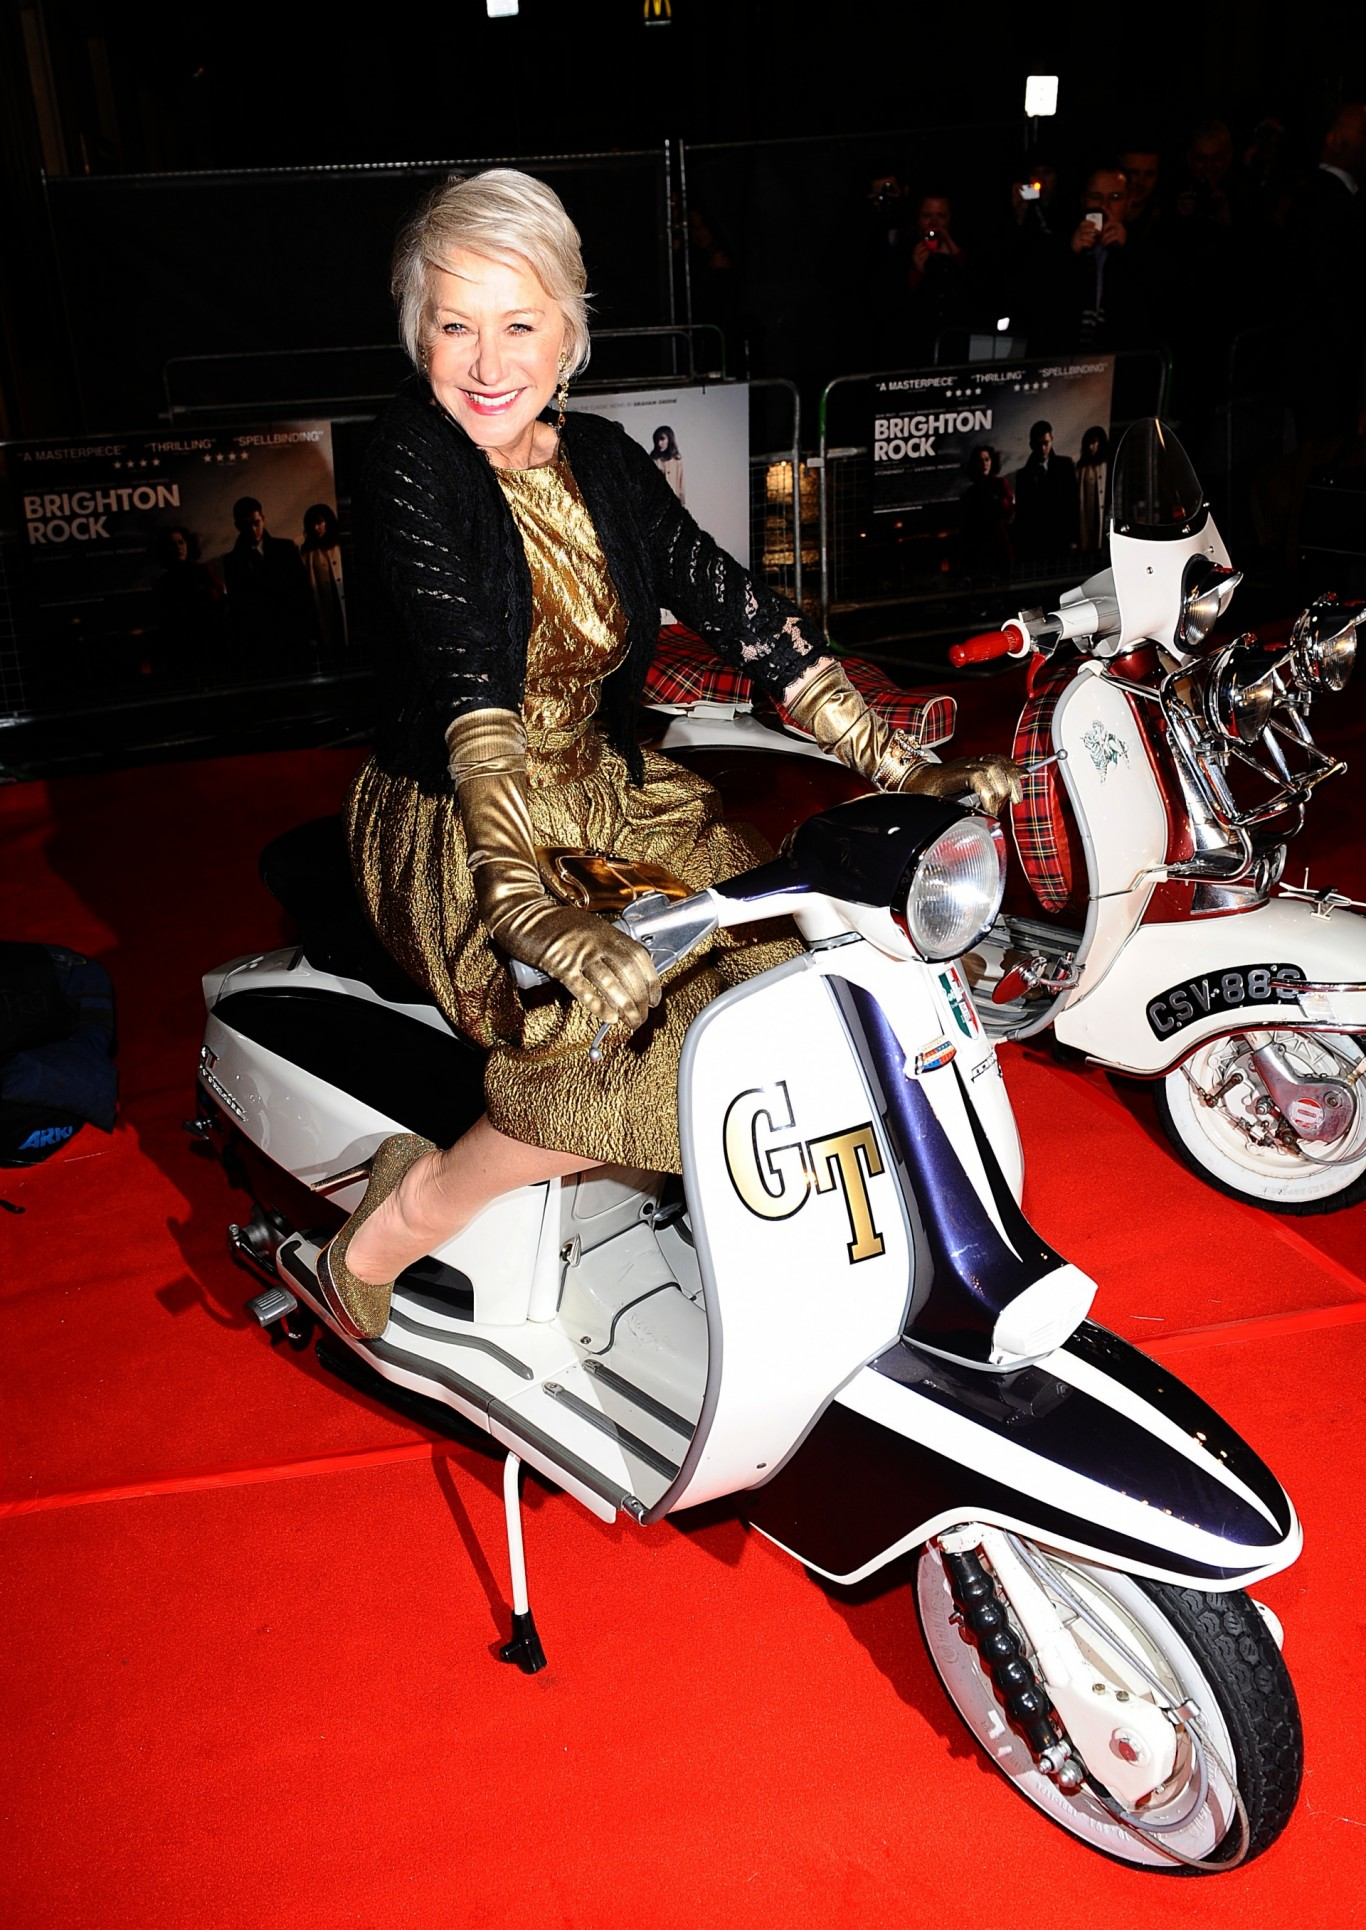 Helen Mirren poses on a scooter at the premiere of Brighton Rock in 2011